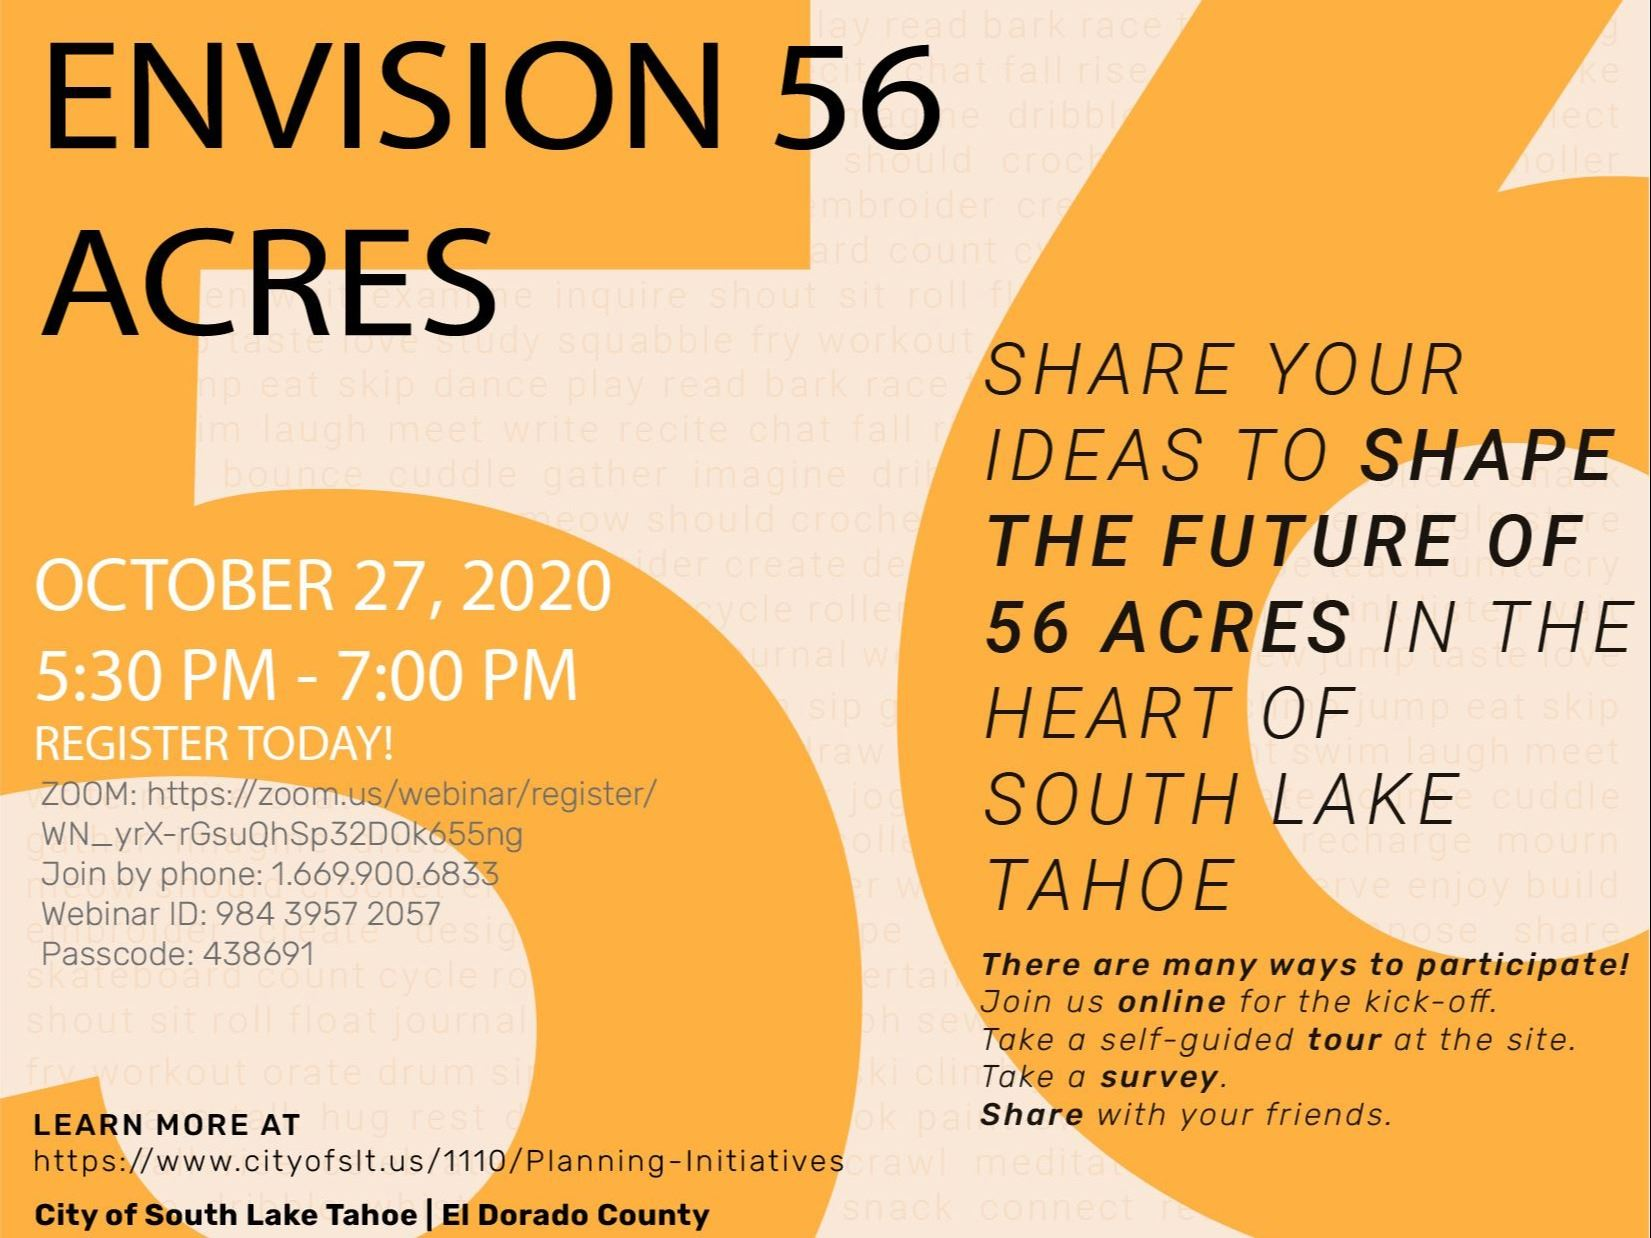 Envision 56 Acres Flyer-oct 27-01